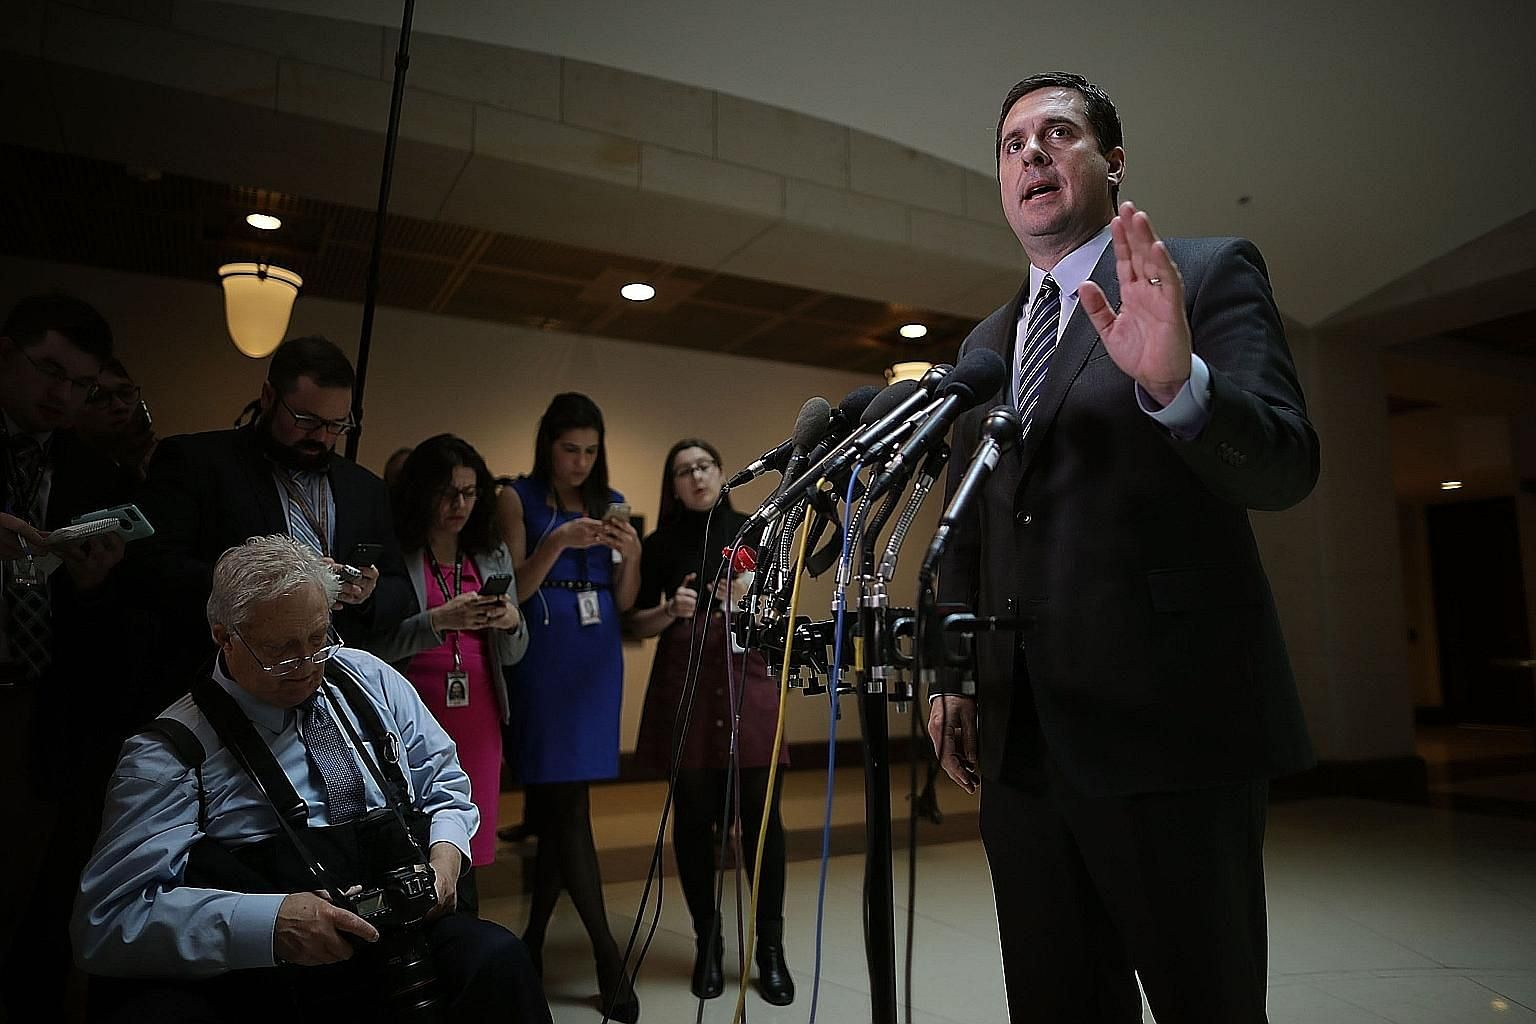 Mr Devin Nunes at a press conference last Friday. He met a source on White House grounds to view secret reports, but said it was the most convenient secure location with a computer linked to the system with the reports.